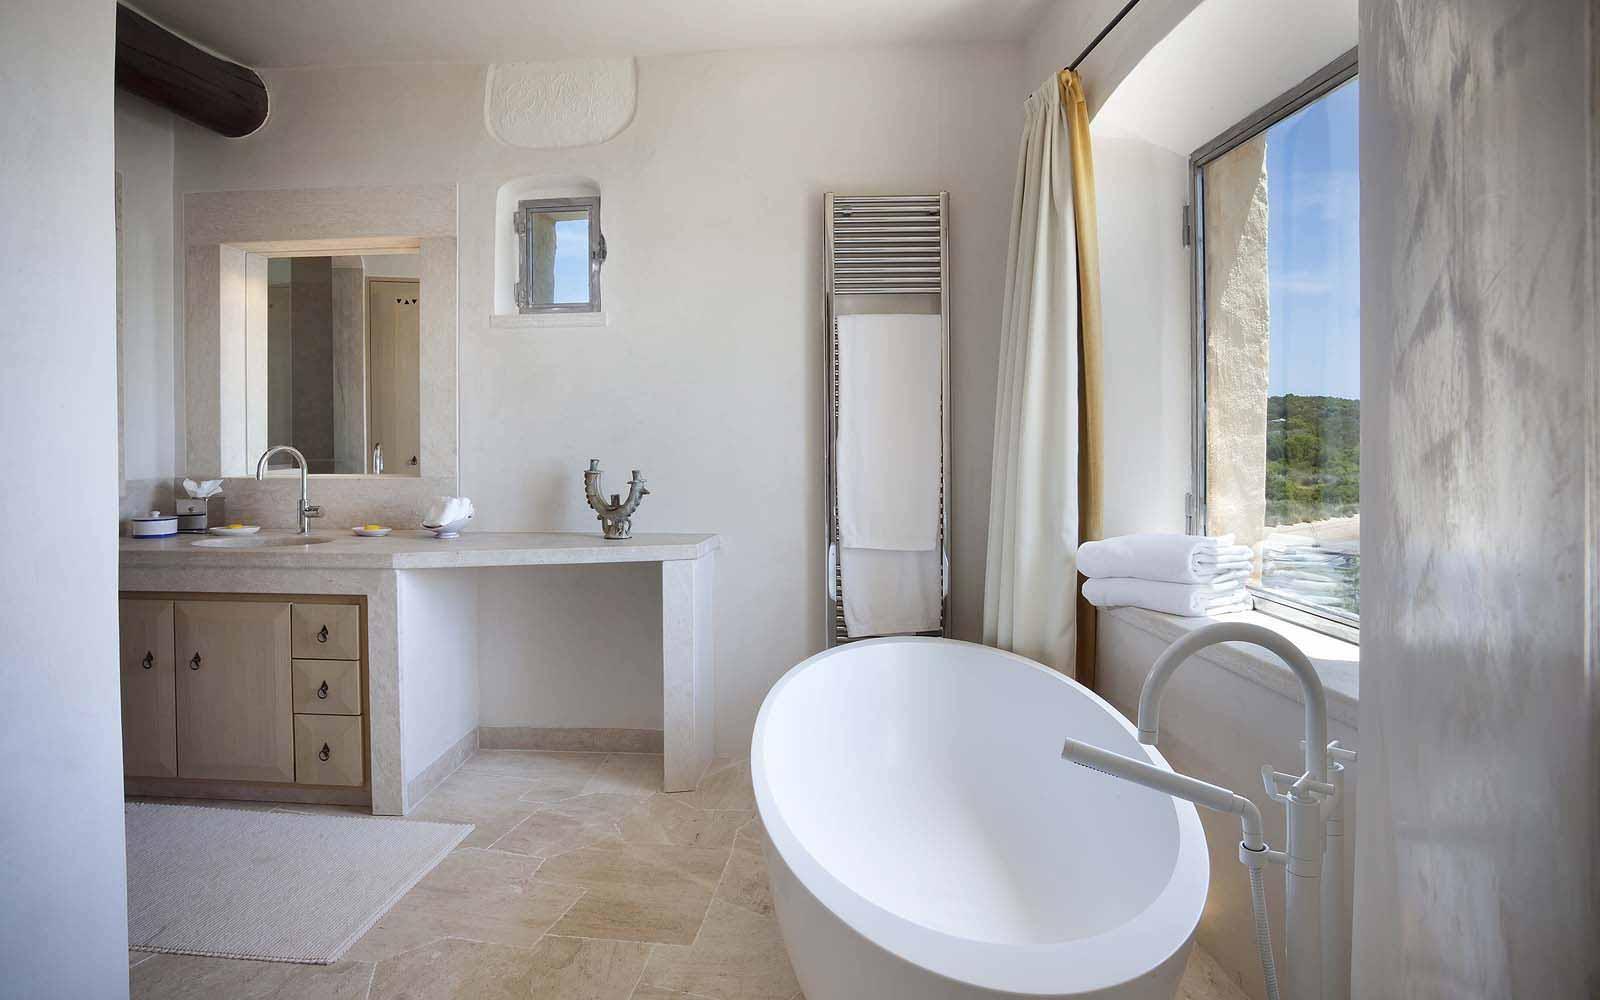 A bathroom of a Premium Suite at the Cala di Volpe